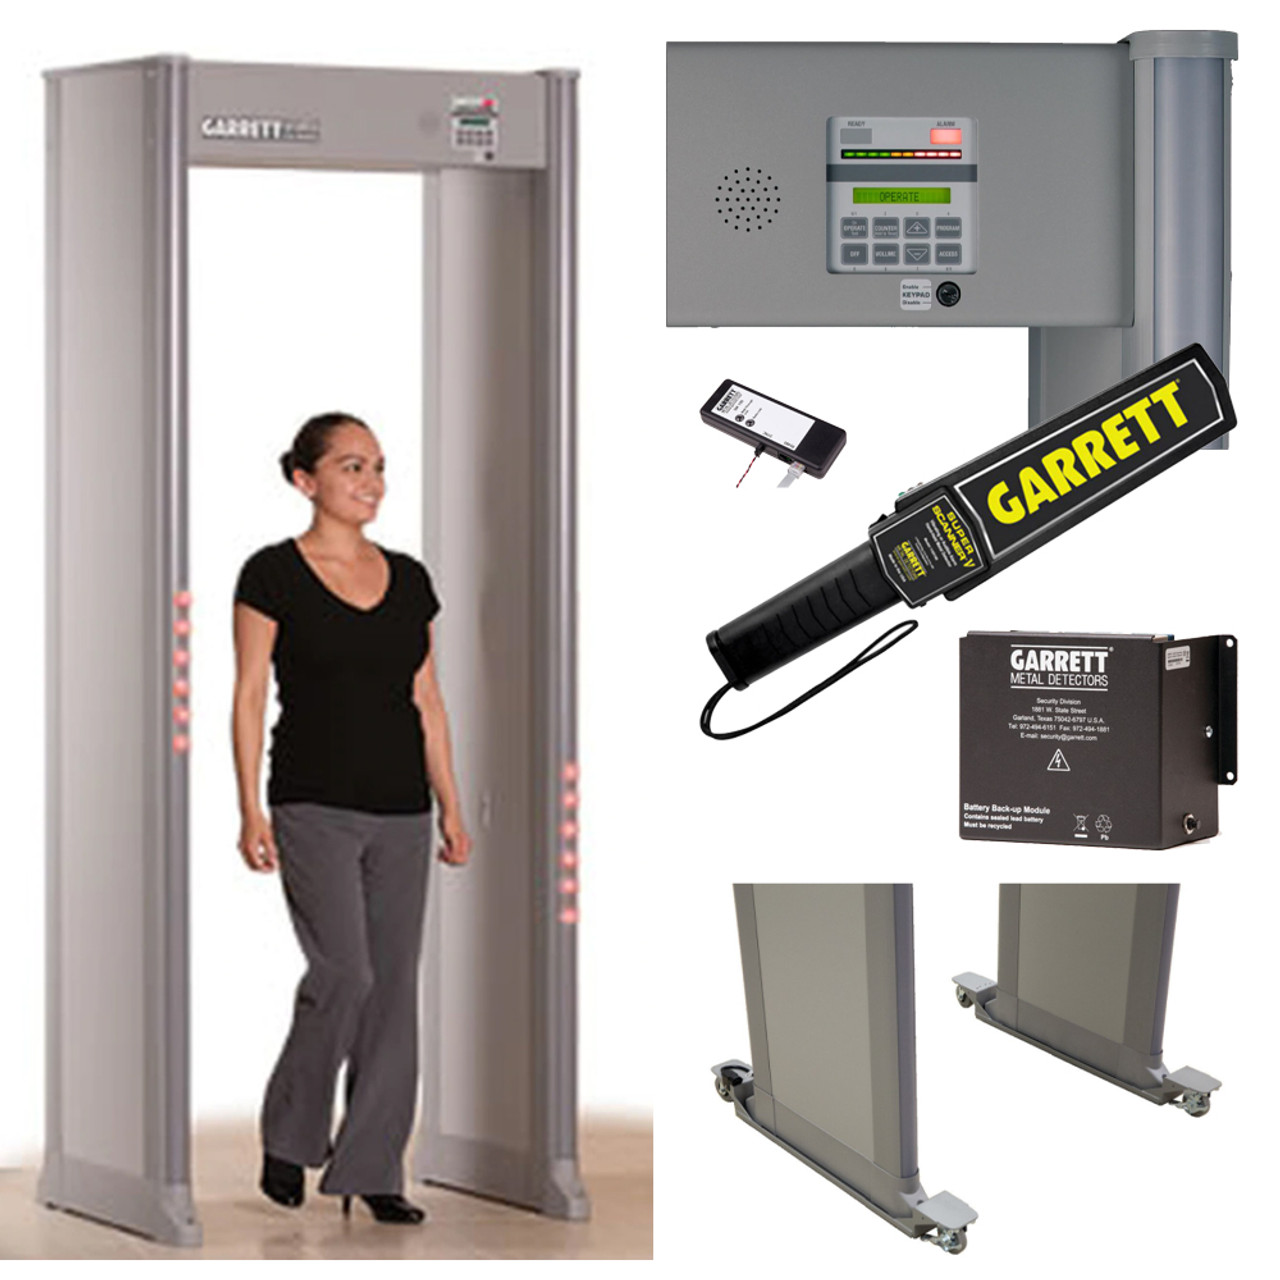 Garrett PD-6500i Walk-Through Metal Detector Package includes: Hand-Held Super-Scanner V, 14 A-H Lithium MZ Backup Battery, Wheels, Wireless Sync to Operate Multiple Systems, 3 Yr Warranty; for Security, Airports, Arenas, Sporting Events, Courthouses